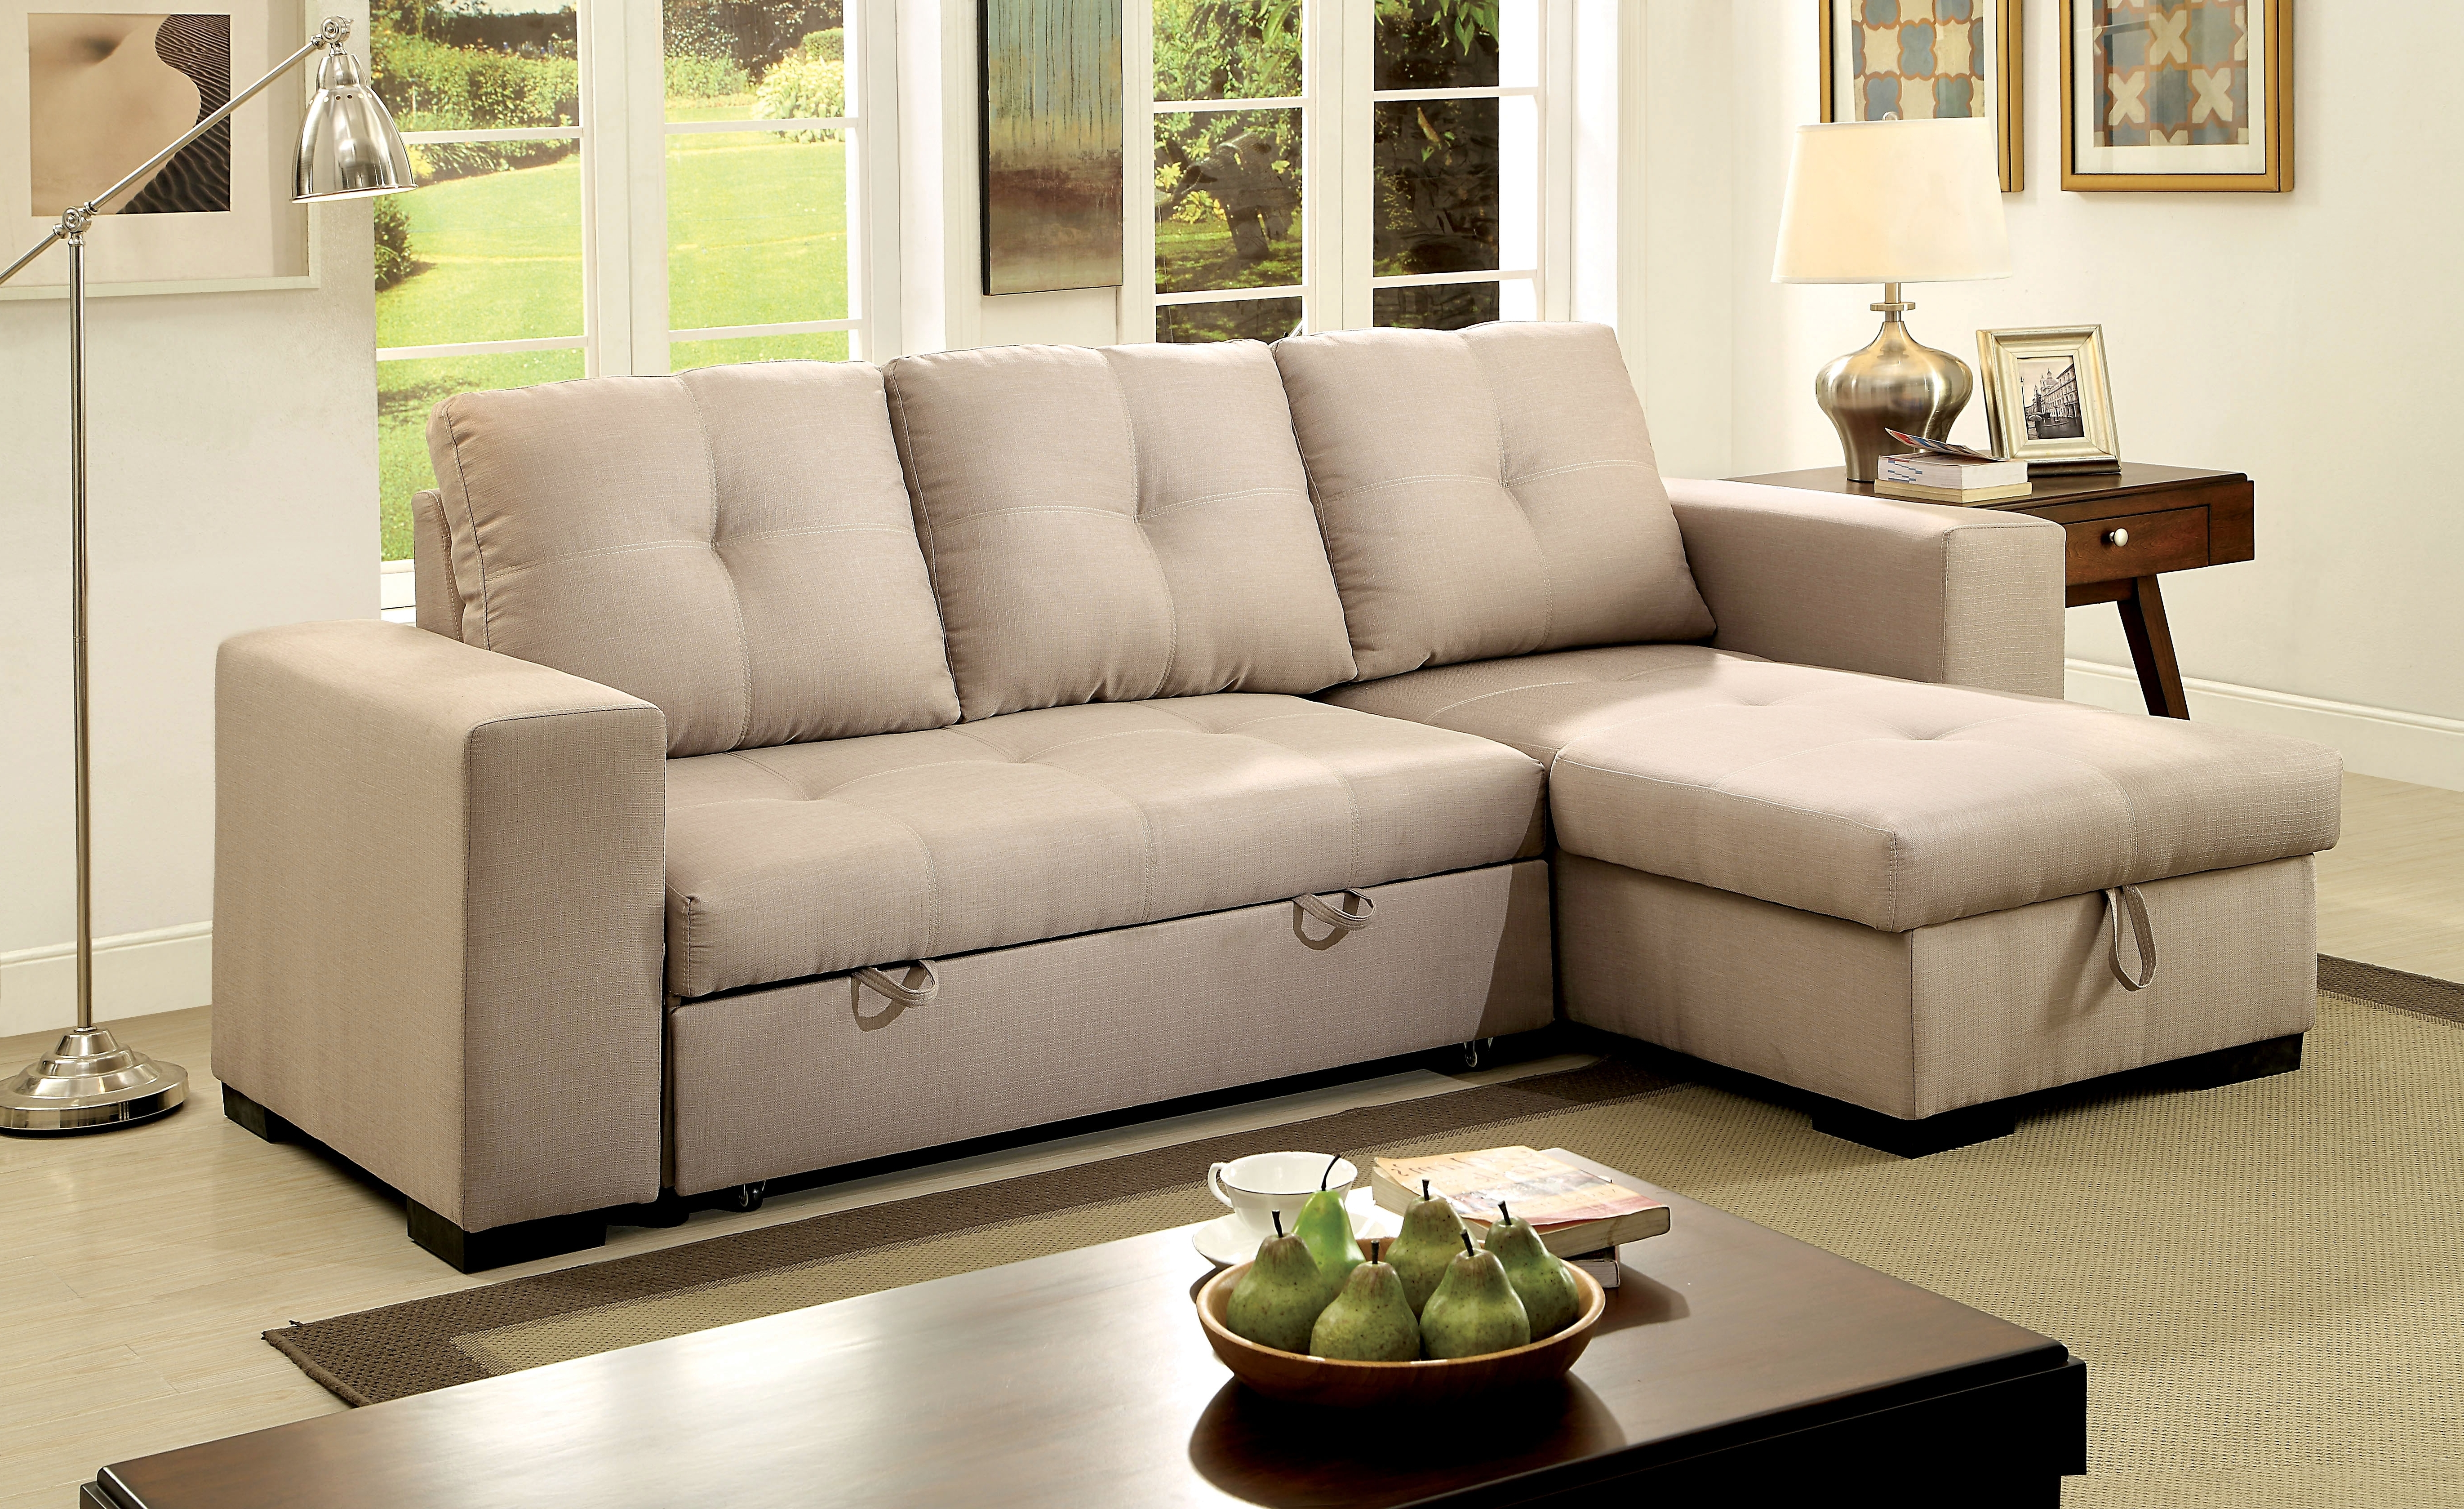 2017 Kmart Sectional Sofas in Brilliant Kmart Sectional Sofa - Buildsimplehome